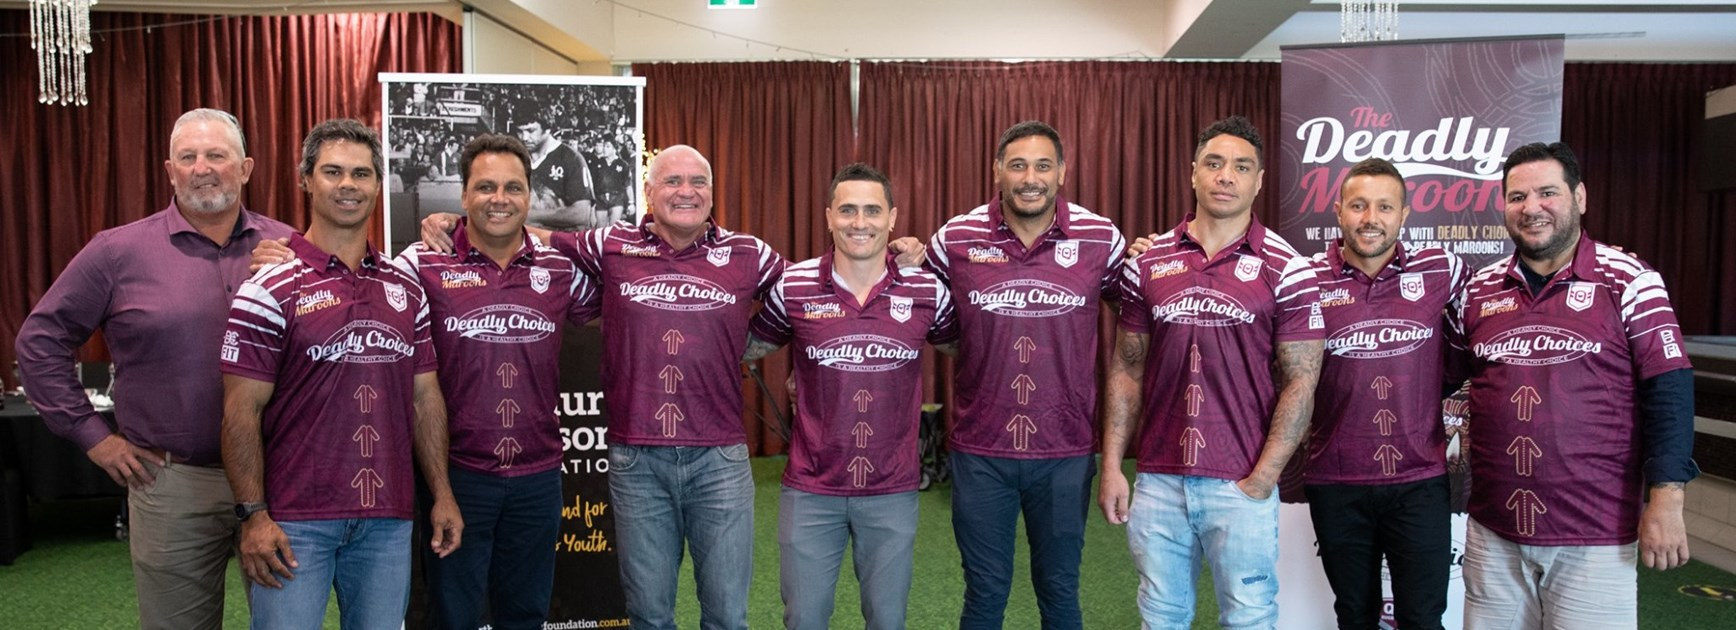 Deadly Maroons 40-year Origin team full of talent